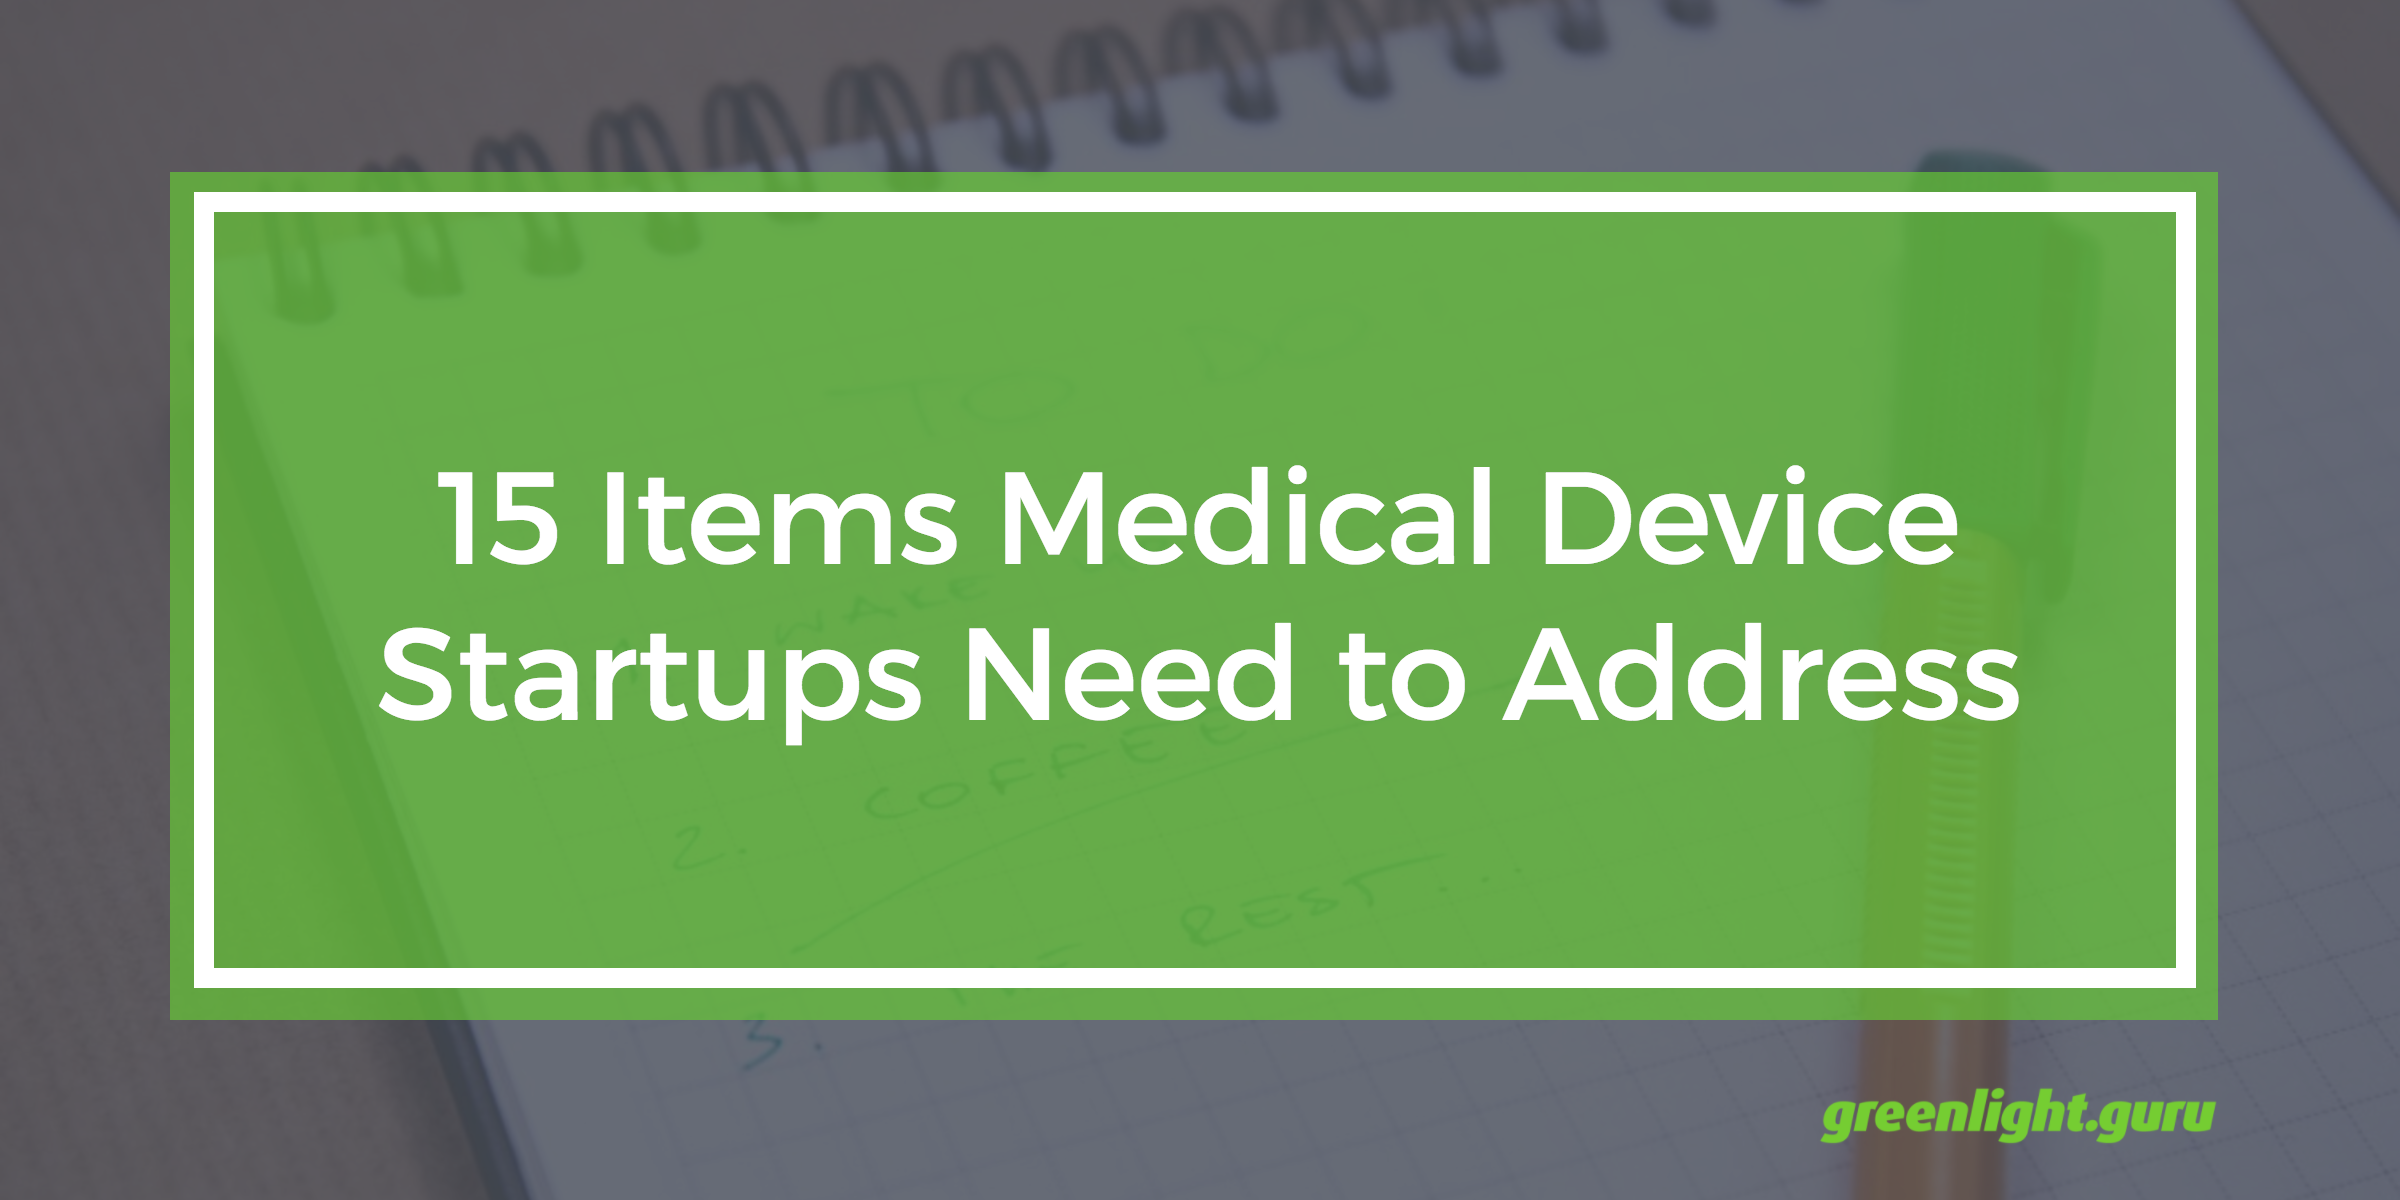 15 Items Medical Device Startups Need to Address - Featured Image